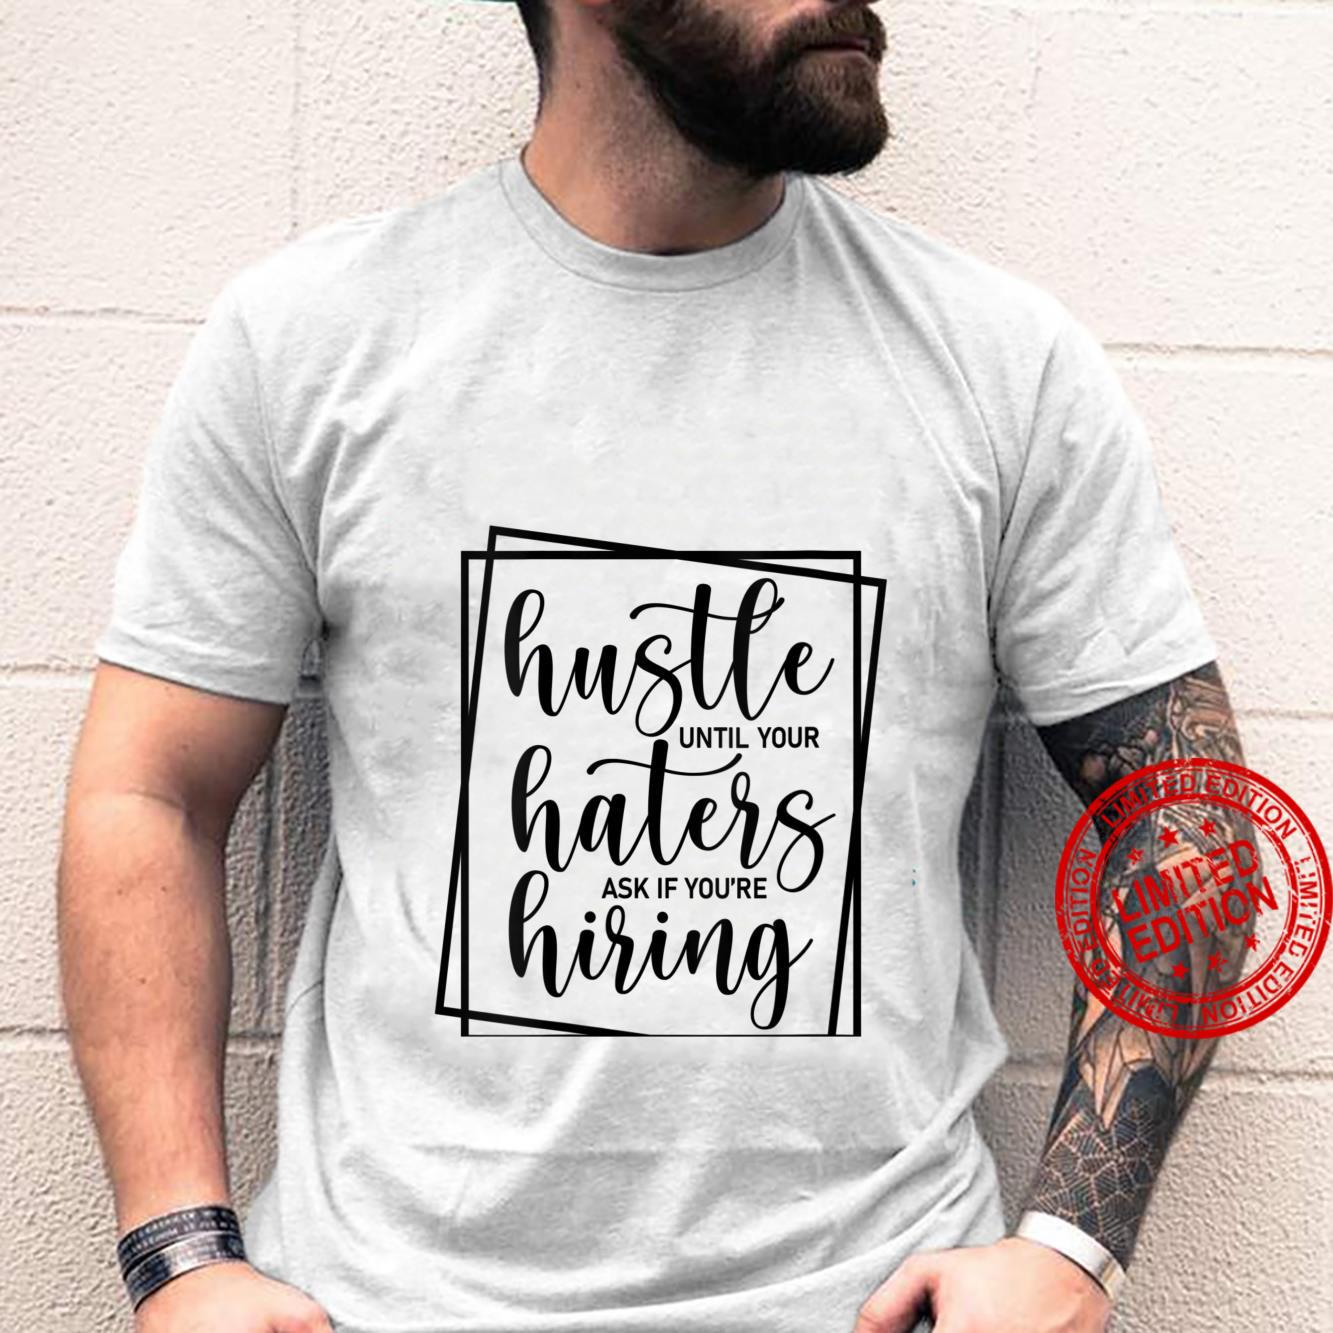 Womens Hustle until Haters Ask if you are Hiring. Shirt